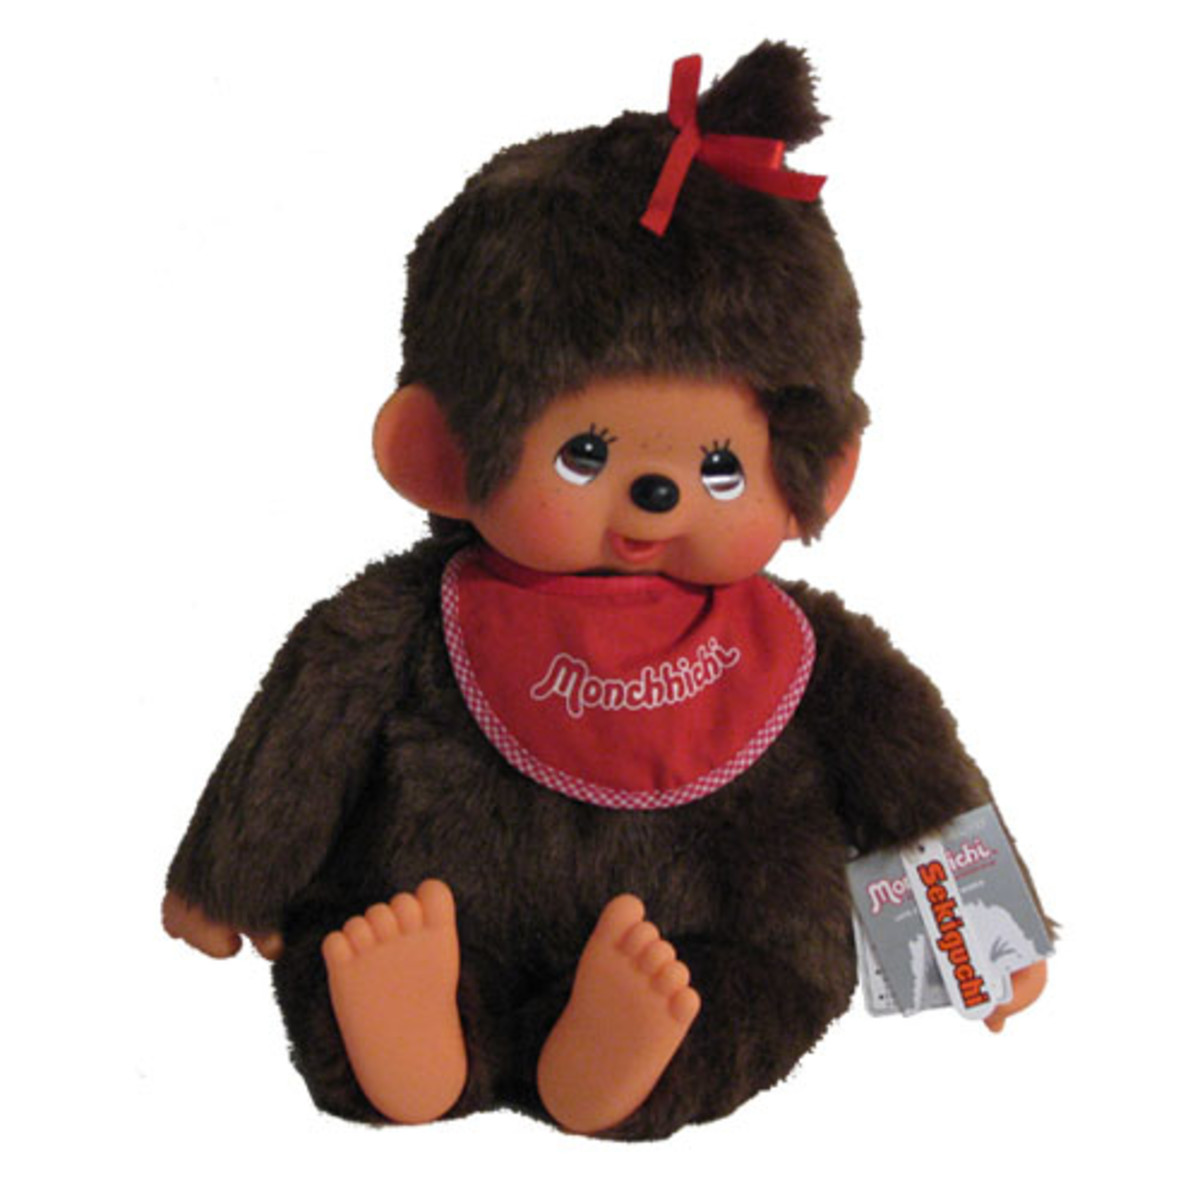 The Monchhichi doll is an 80's fad that will get a big reaction at your white elephant gift exchange.